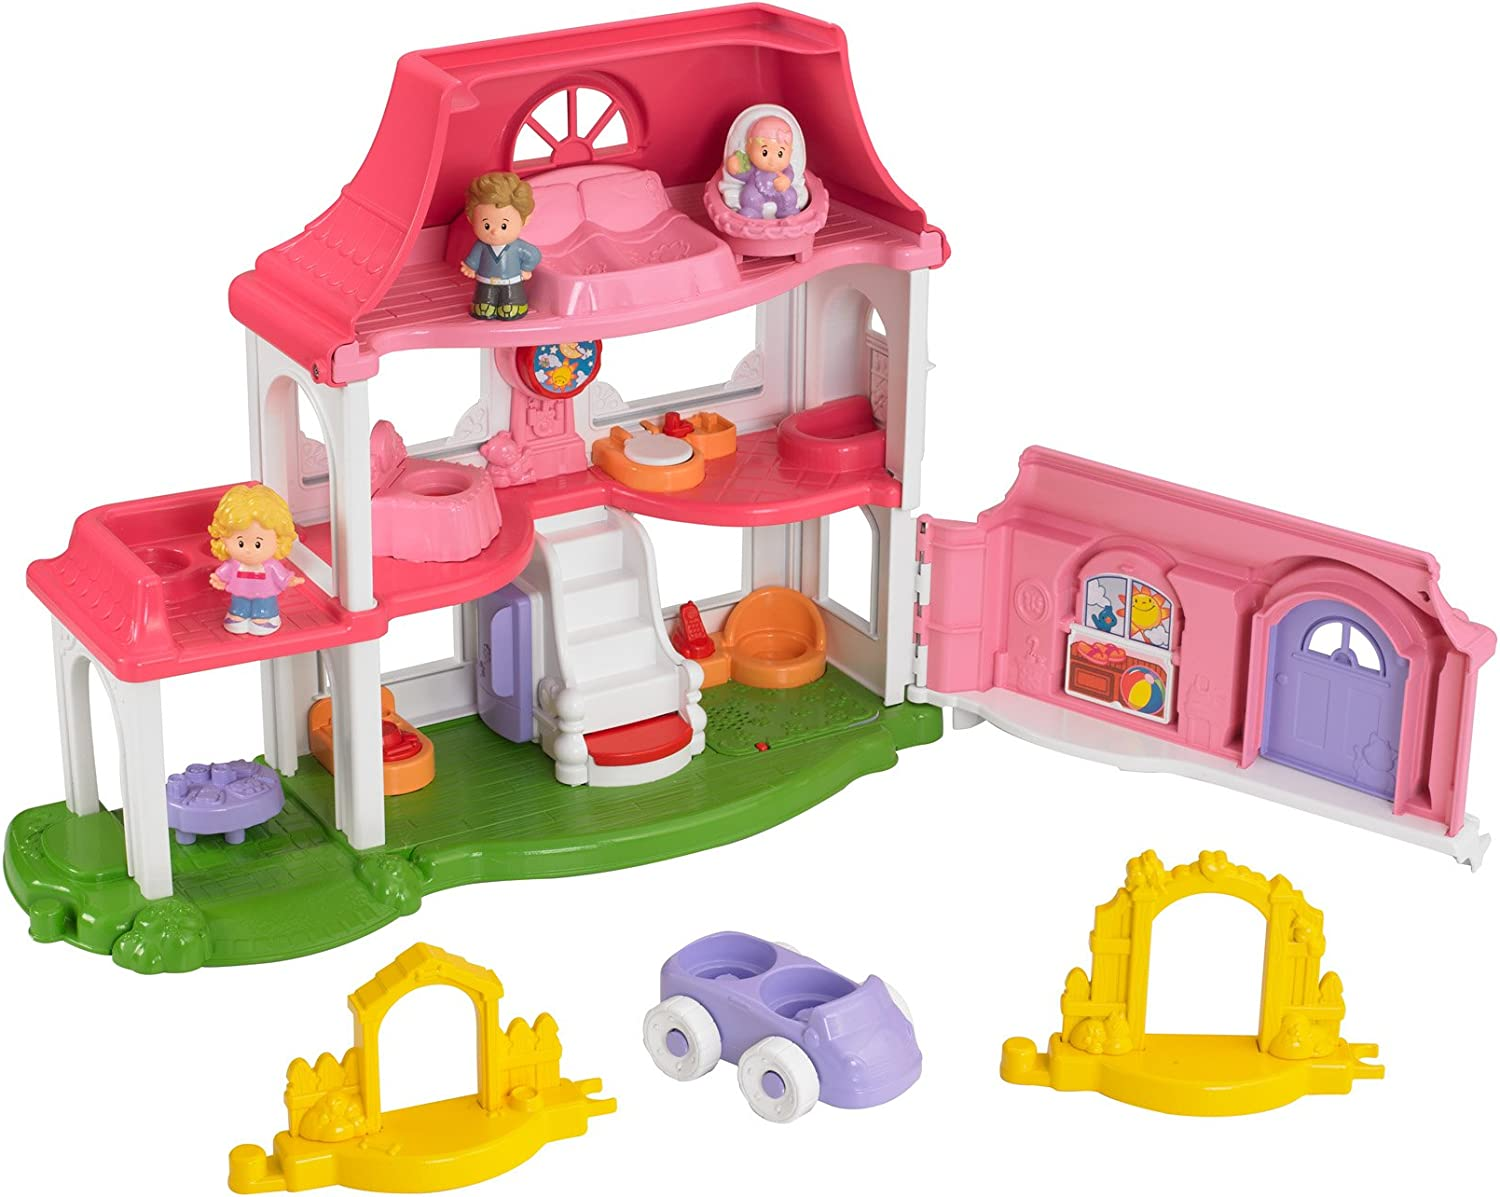 9 Best Fisher Price Dollhouse Reviews of 2021 12